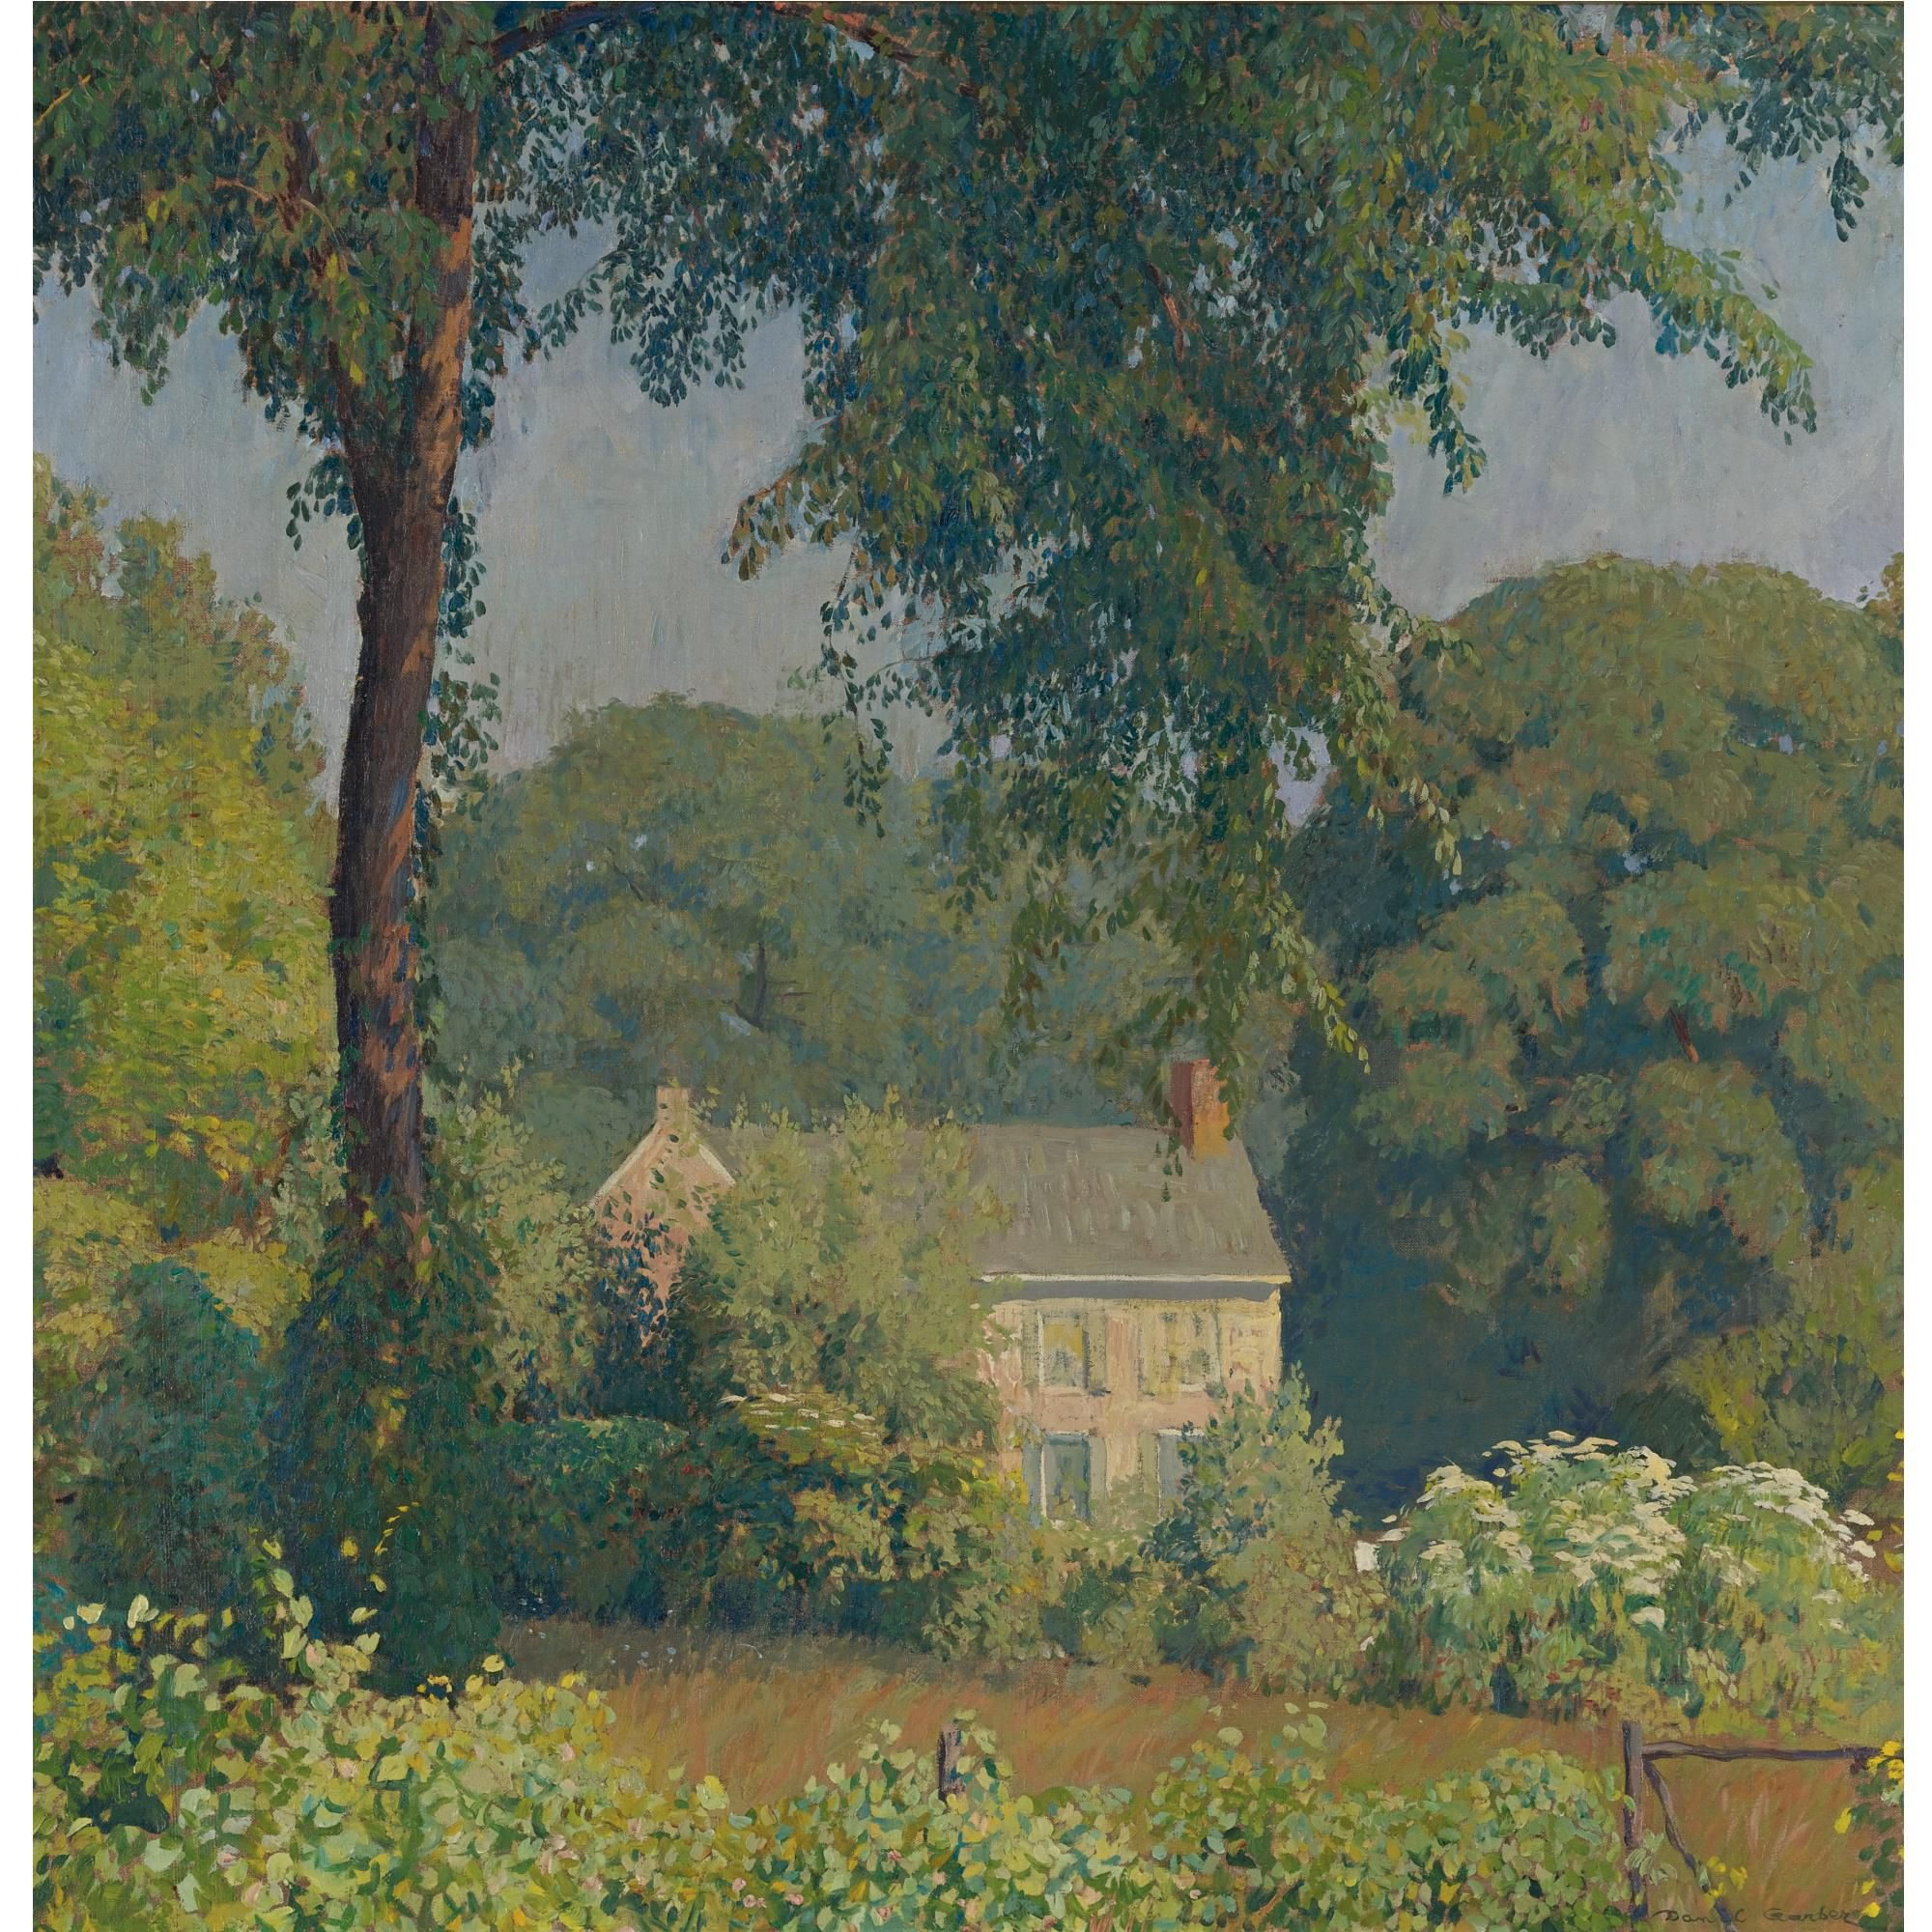 Quot Summer Silence Quot Daniel Garber 1929 Oil On Canvas 30 X